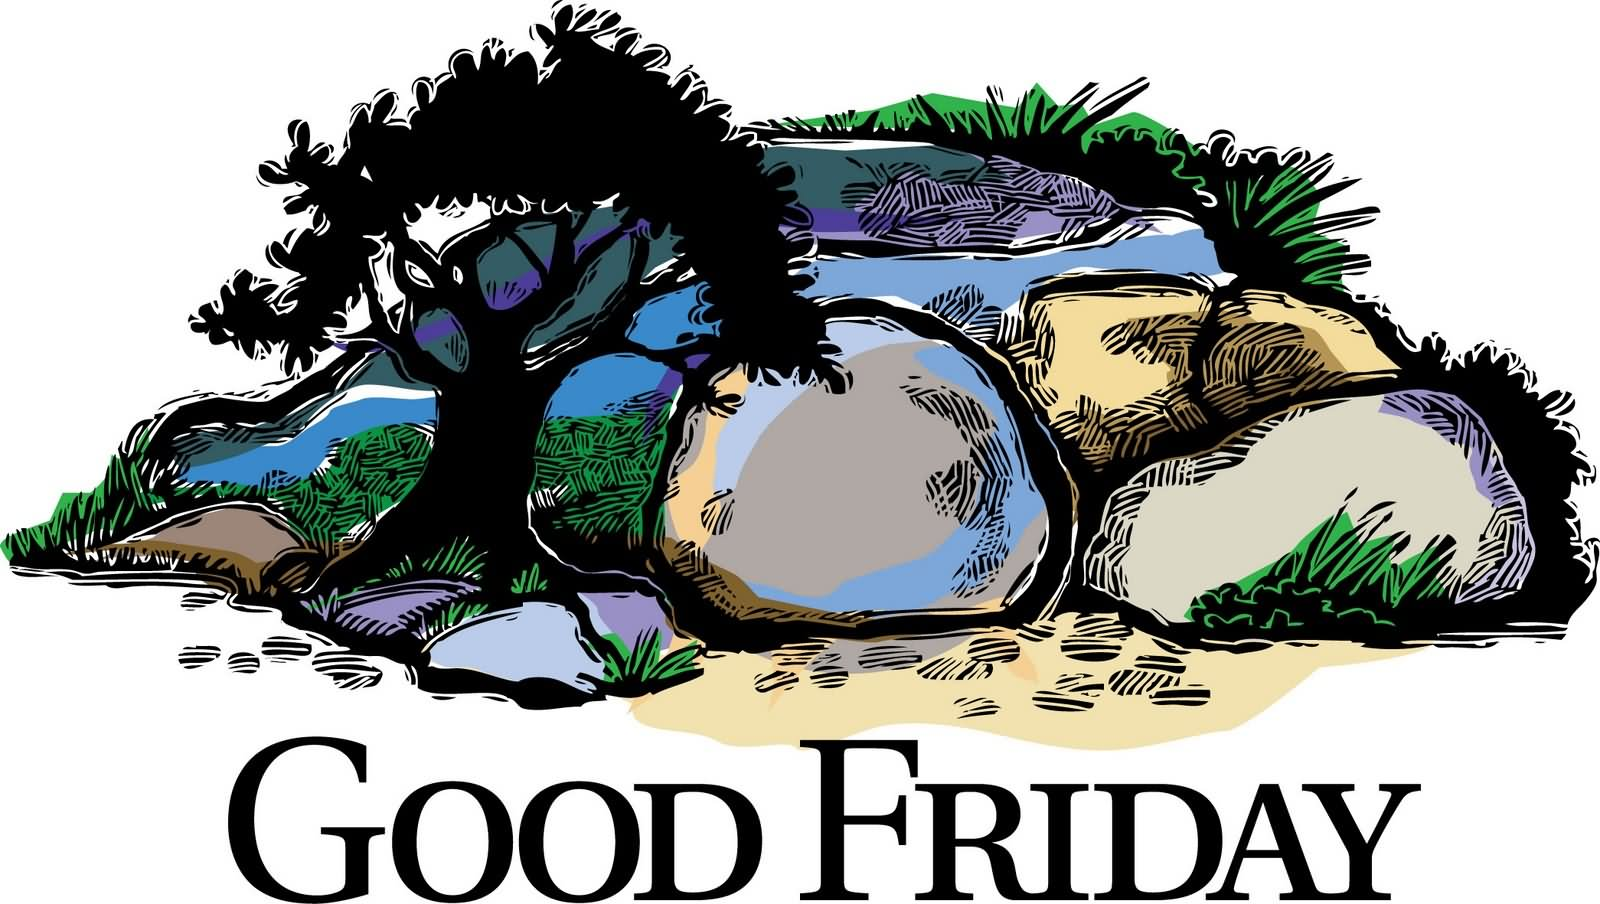 good friday clipart image central schwenkfelder church rh centralschwenkfelder com good friday clipart for facebook good friday clipart black and white